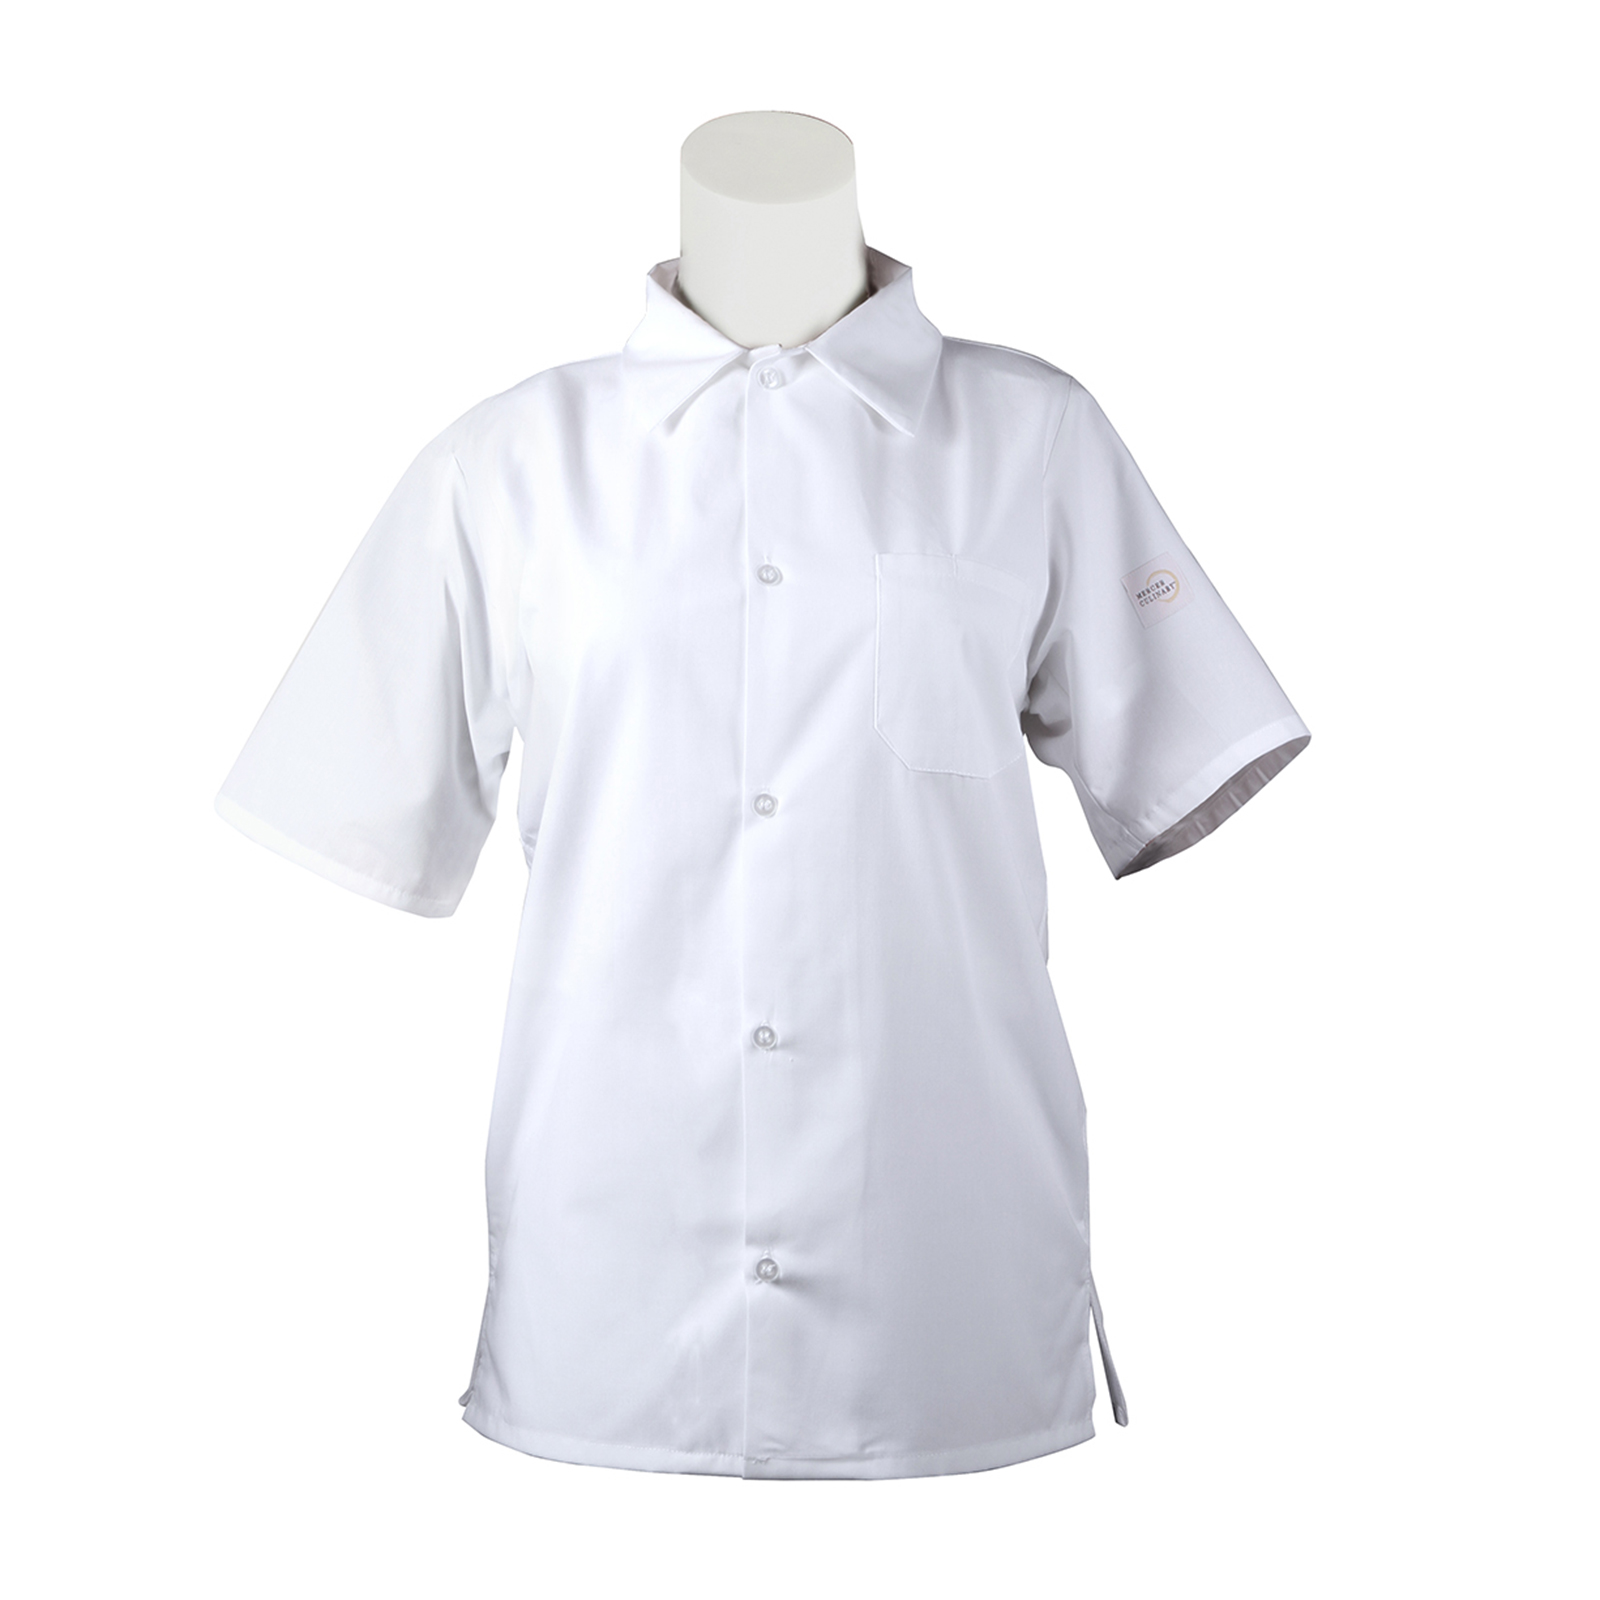 Mercer Culinary M60200WH7X cook's shirt